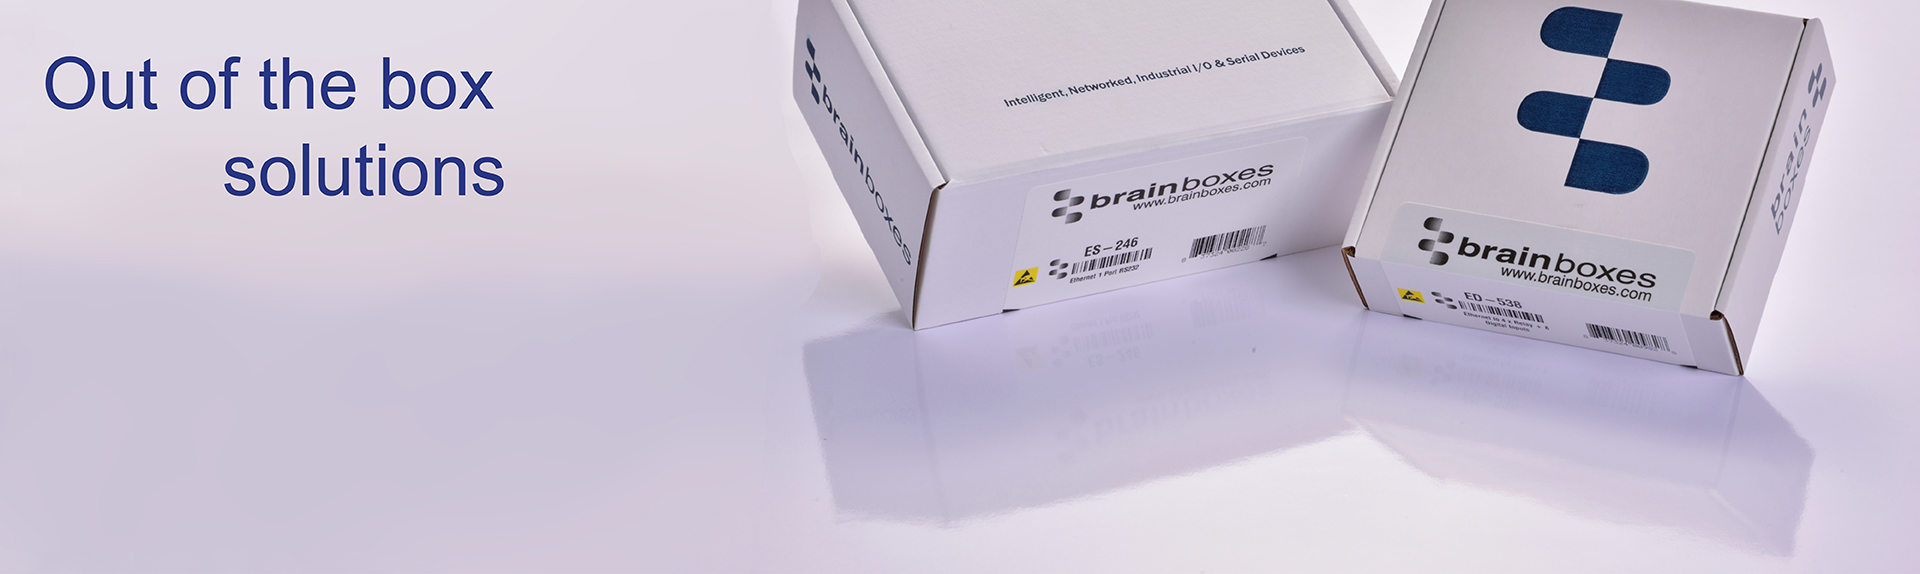 Brainboxes Out of the box solutions